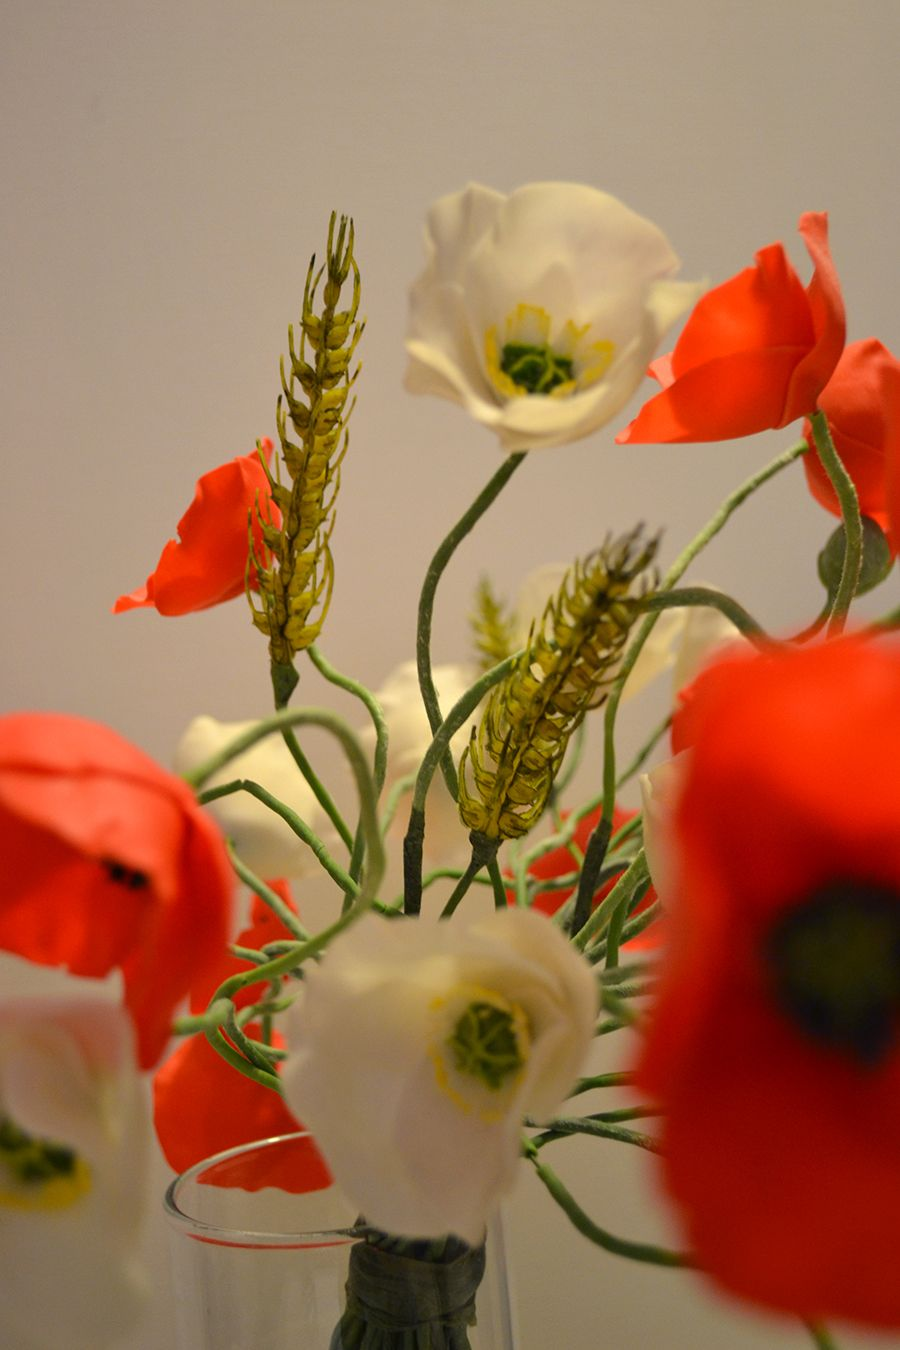 Gorgeous Handmade Clay Poppies Flowers Poppies Are In Red And White